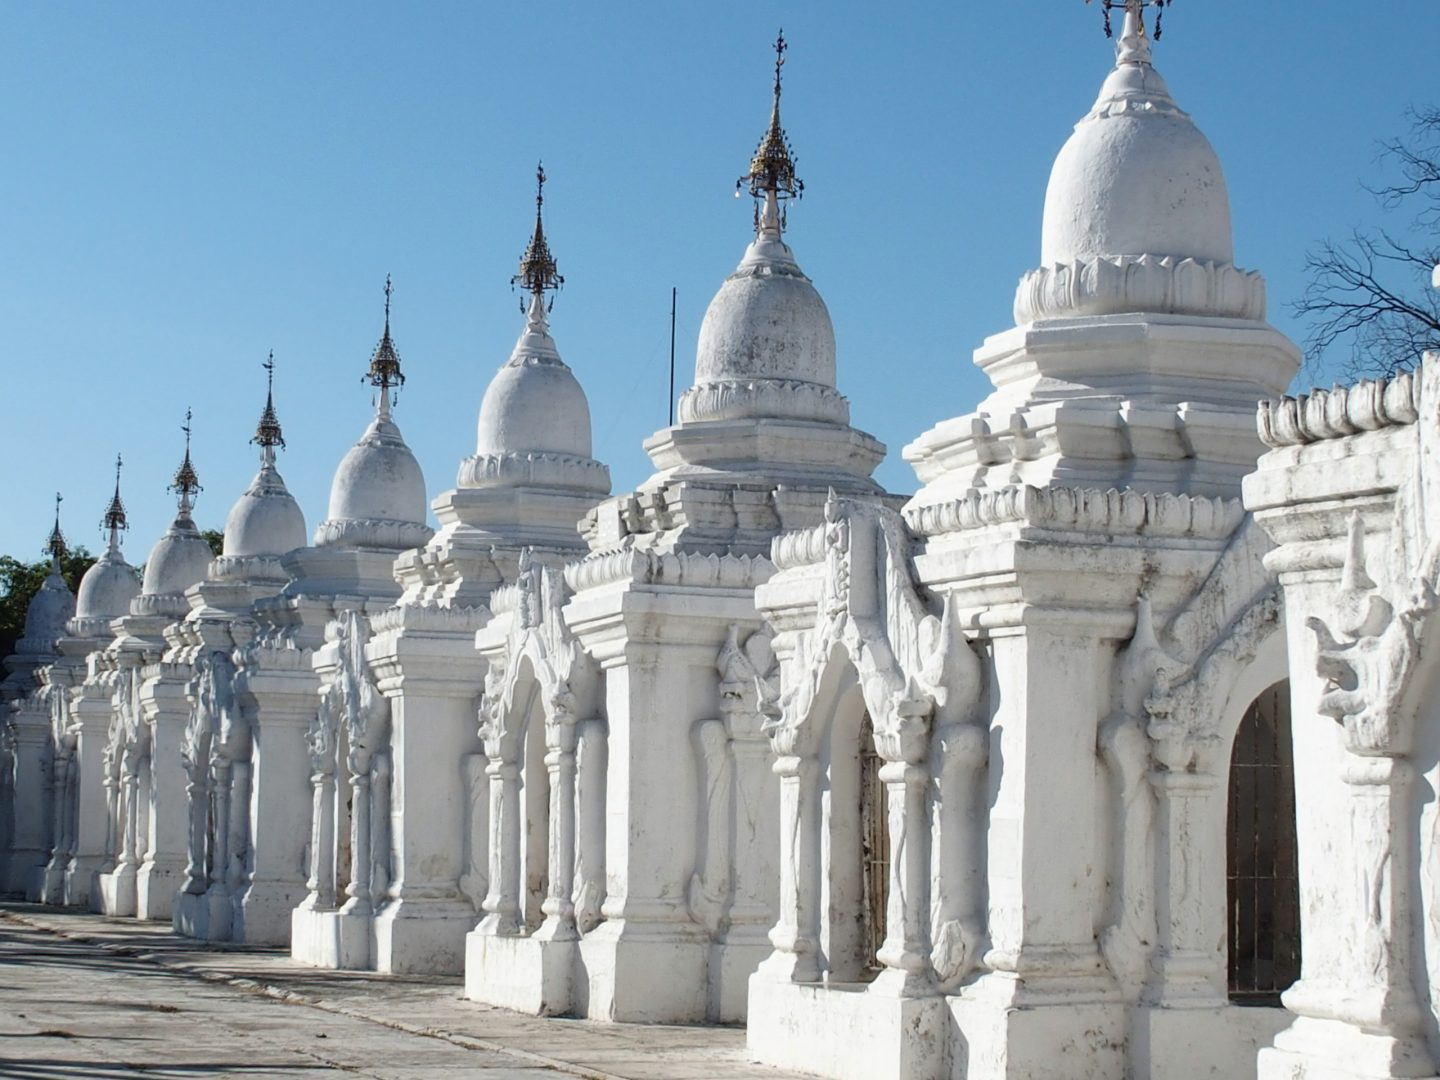 Temples pagode Temples pagode Escalier et chinthes stupa pagode Hsinbyume Mingun Birmanie